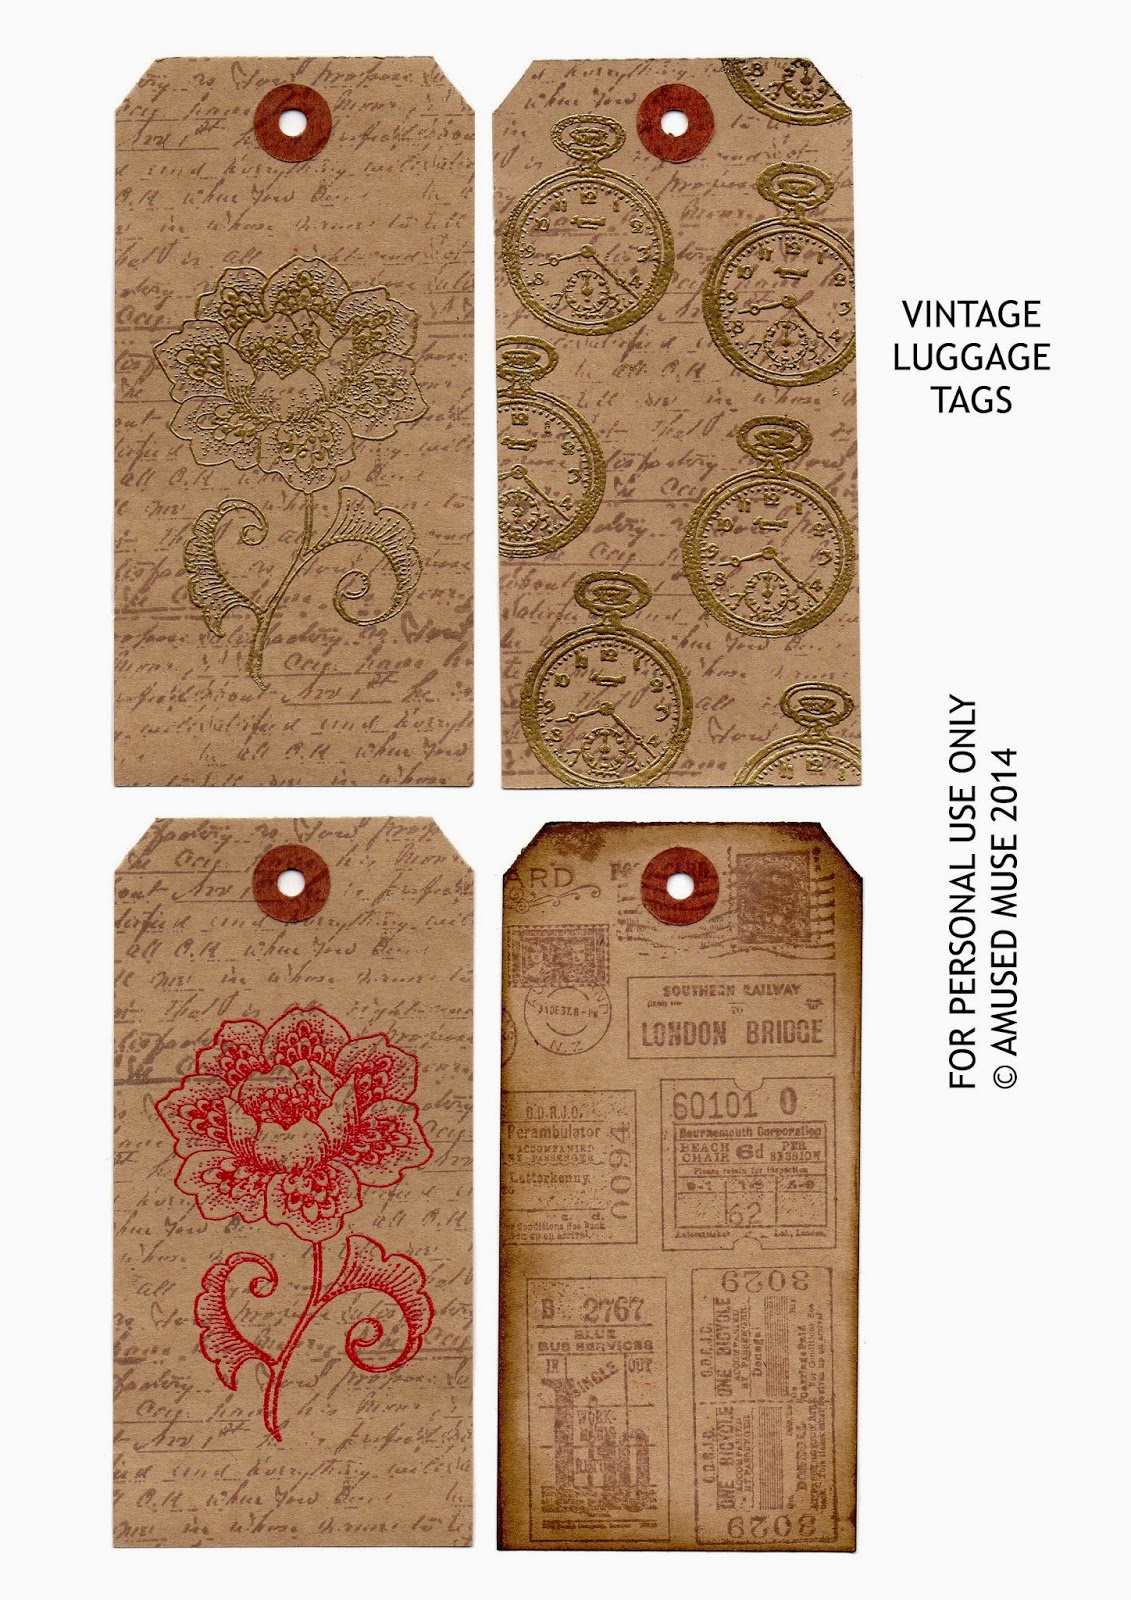 5 best images of vintage luggage tags printable vintage luggage tags template free printable. Black Bedroom Furniture Sets. Home Design Ideas